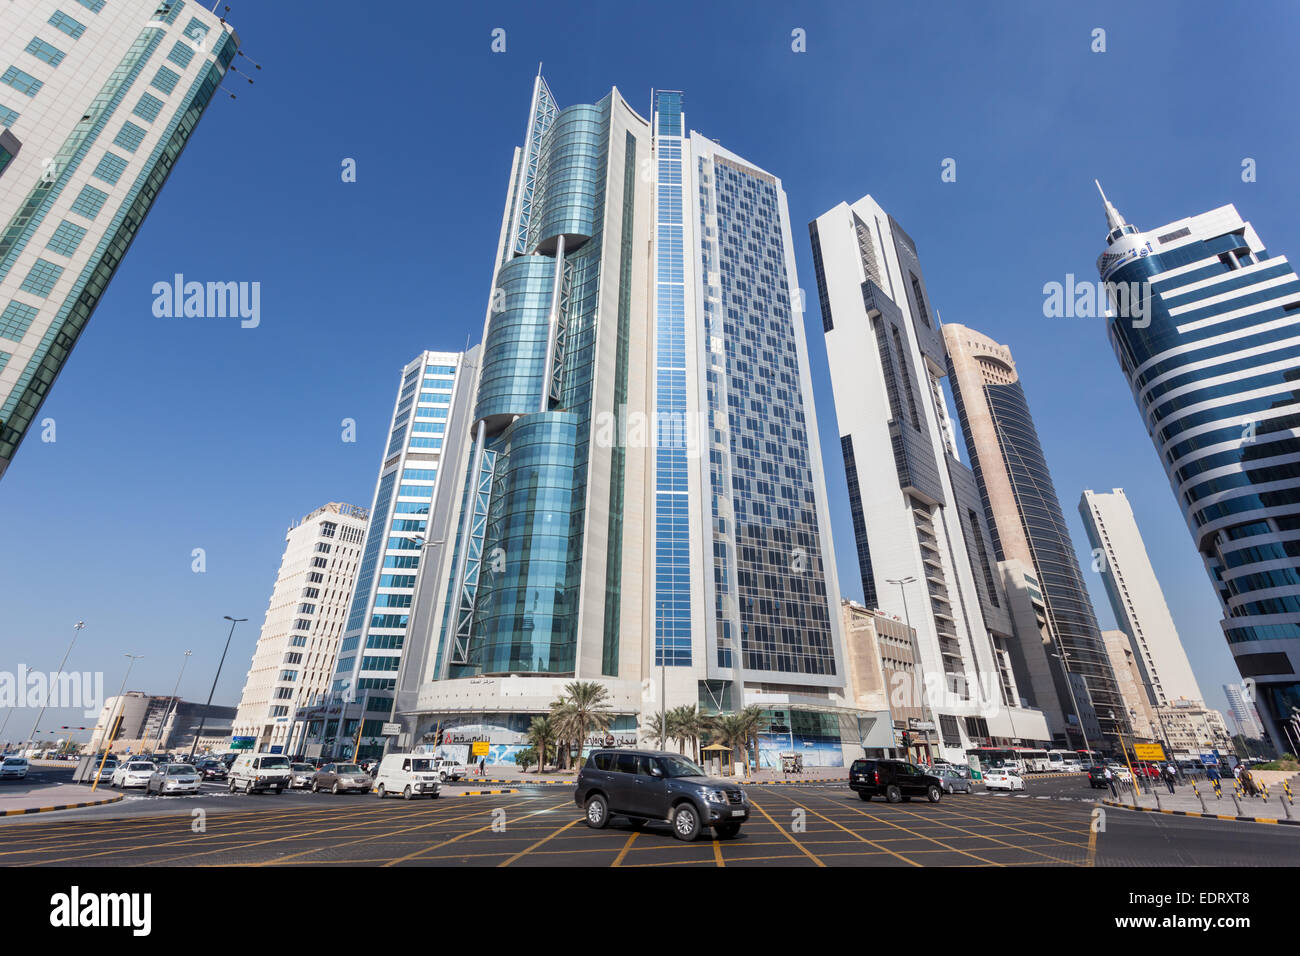 Crossroads downtown in Kuwait City. December 8, 2014 in Kuwait, Middle East - Stock Image